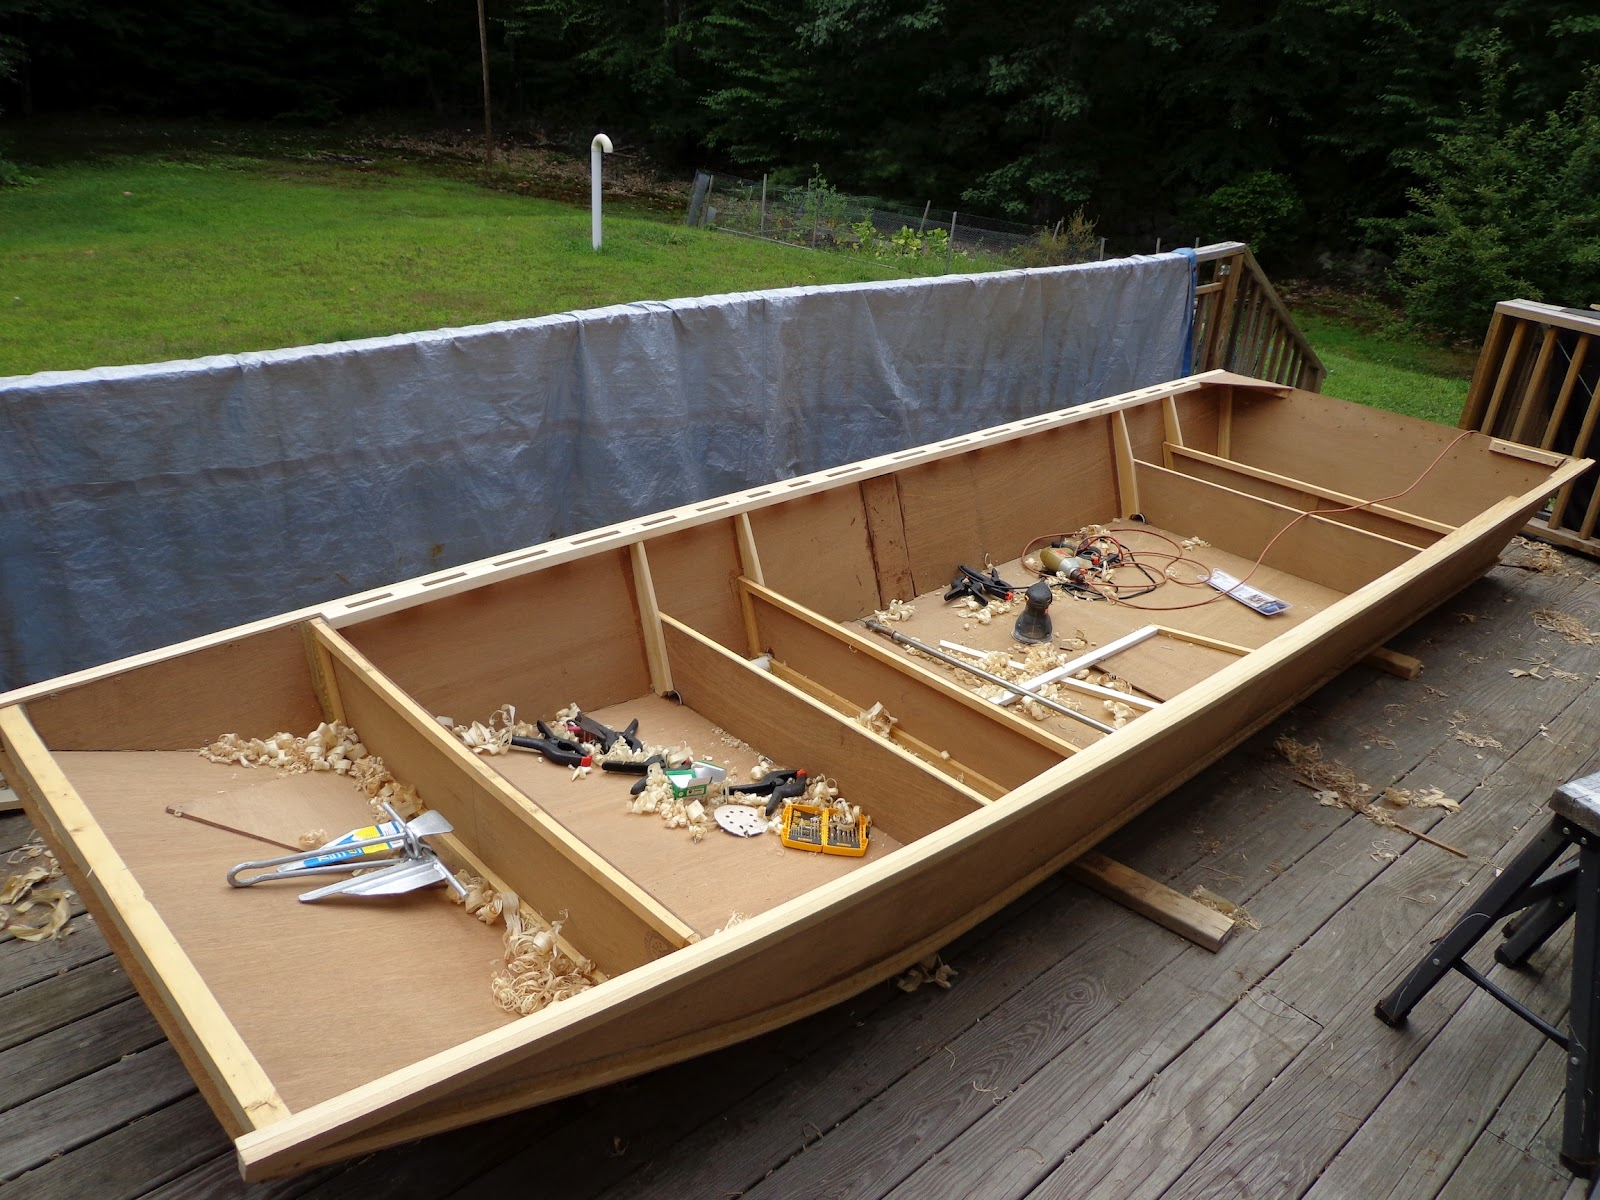 Found Boat building epoxy plywood | BRo Boat